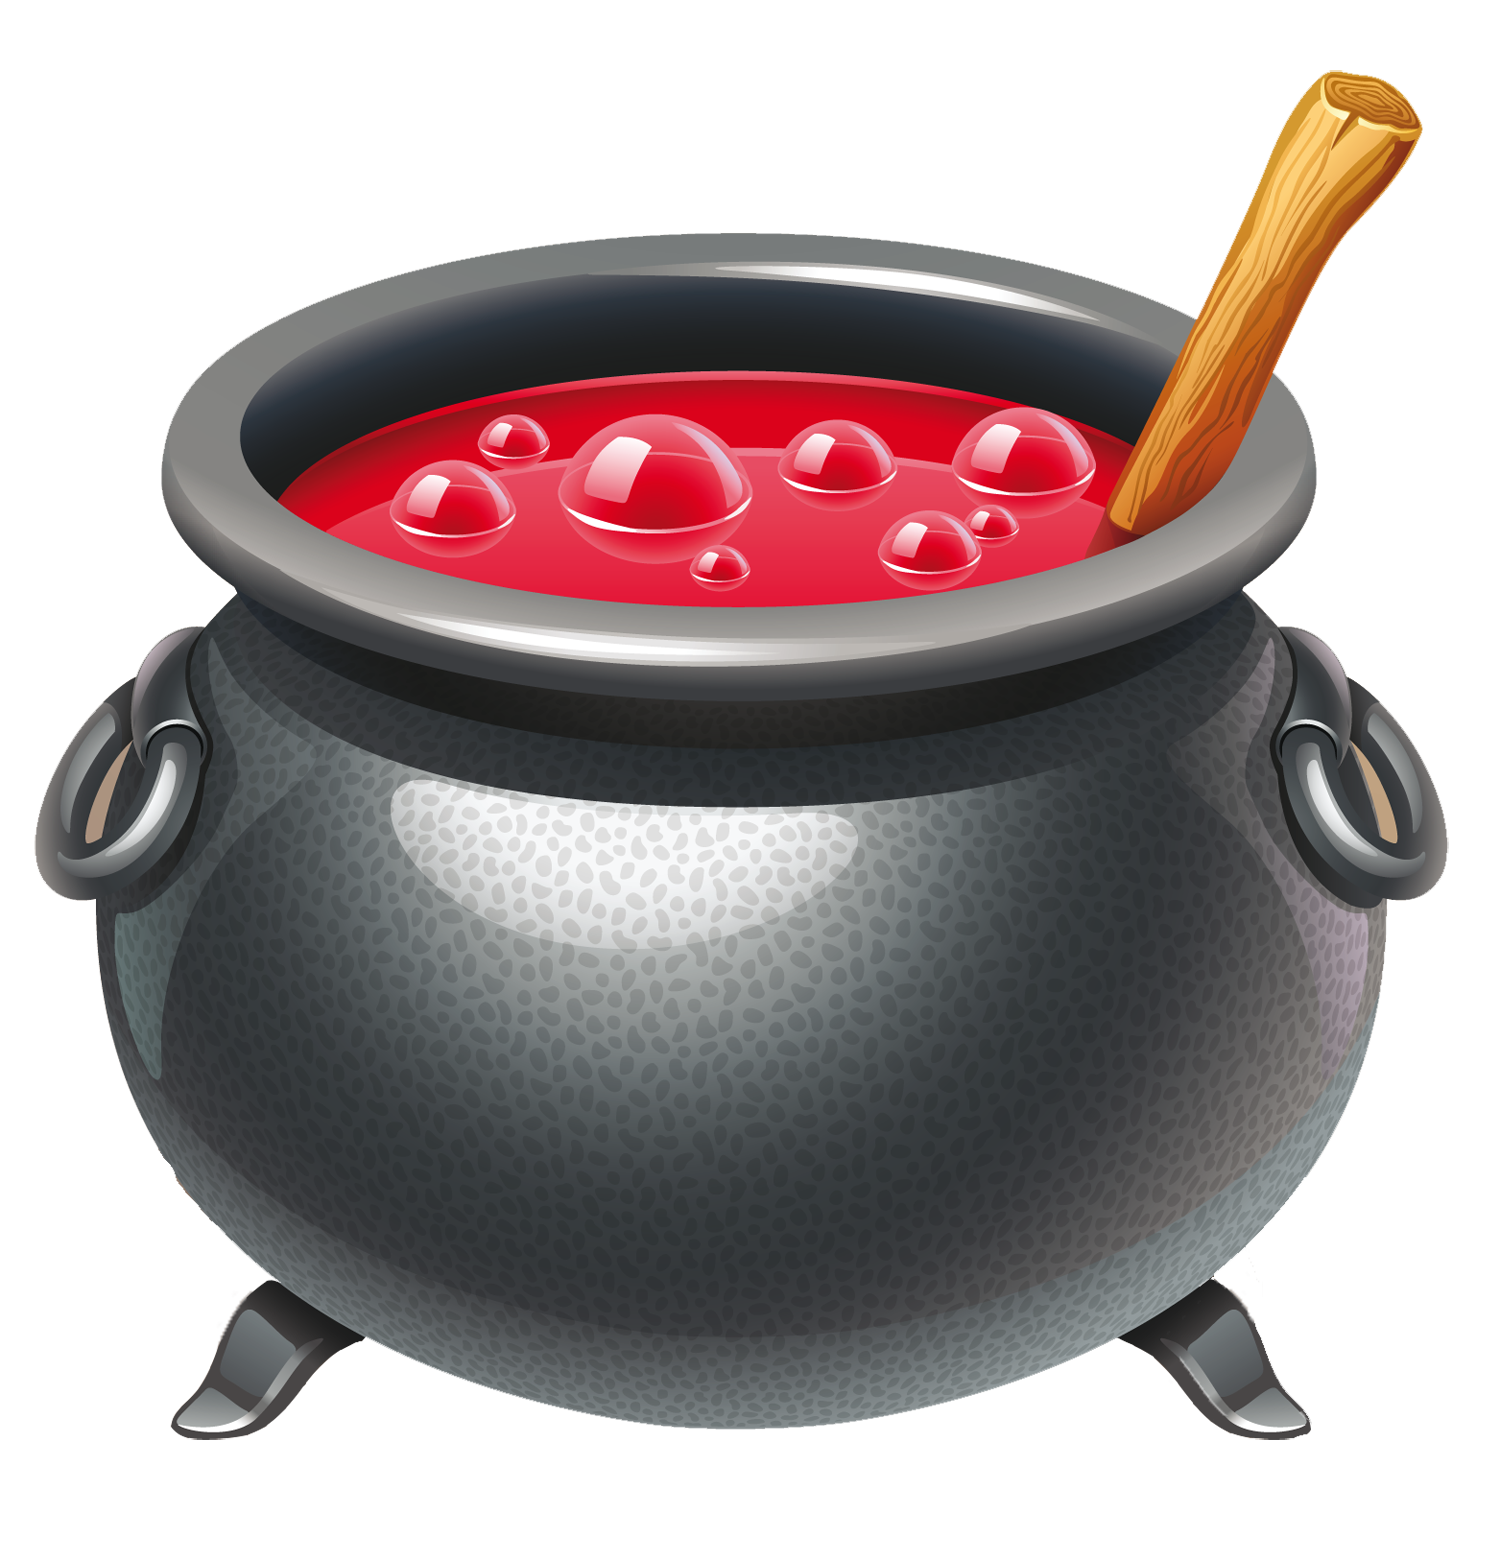 graphic library Witch cauldron gallery yopriceville. Witches clipart bowl